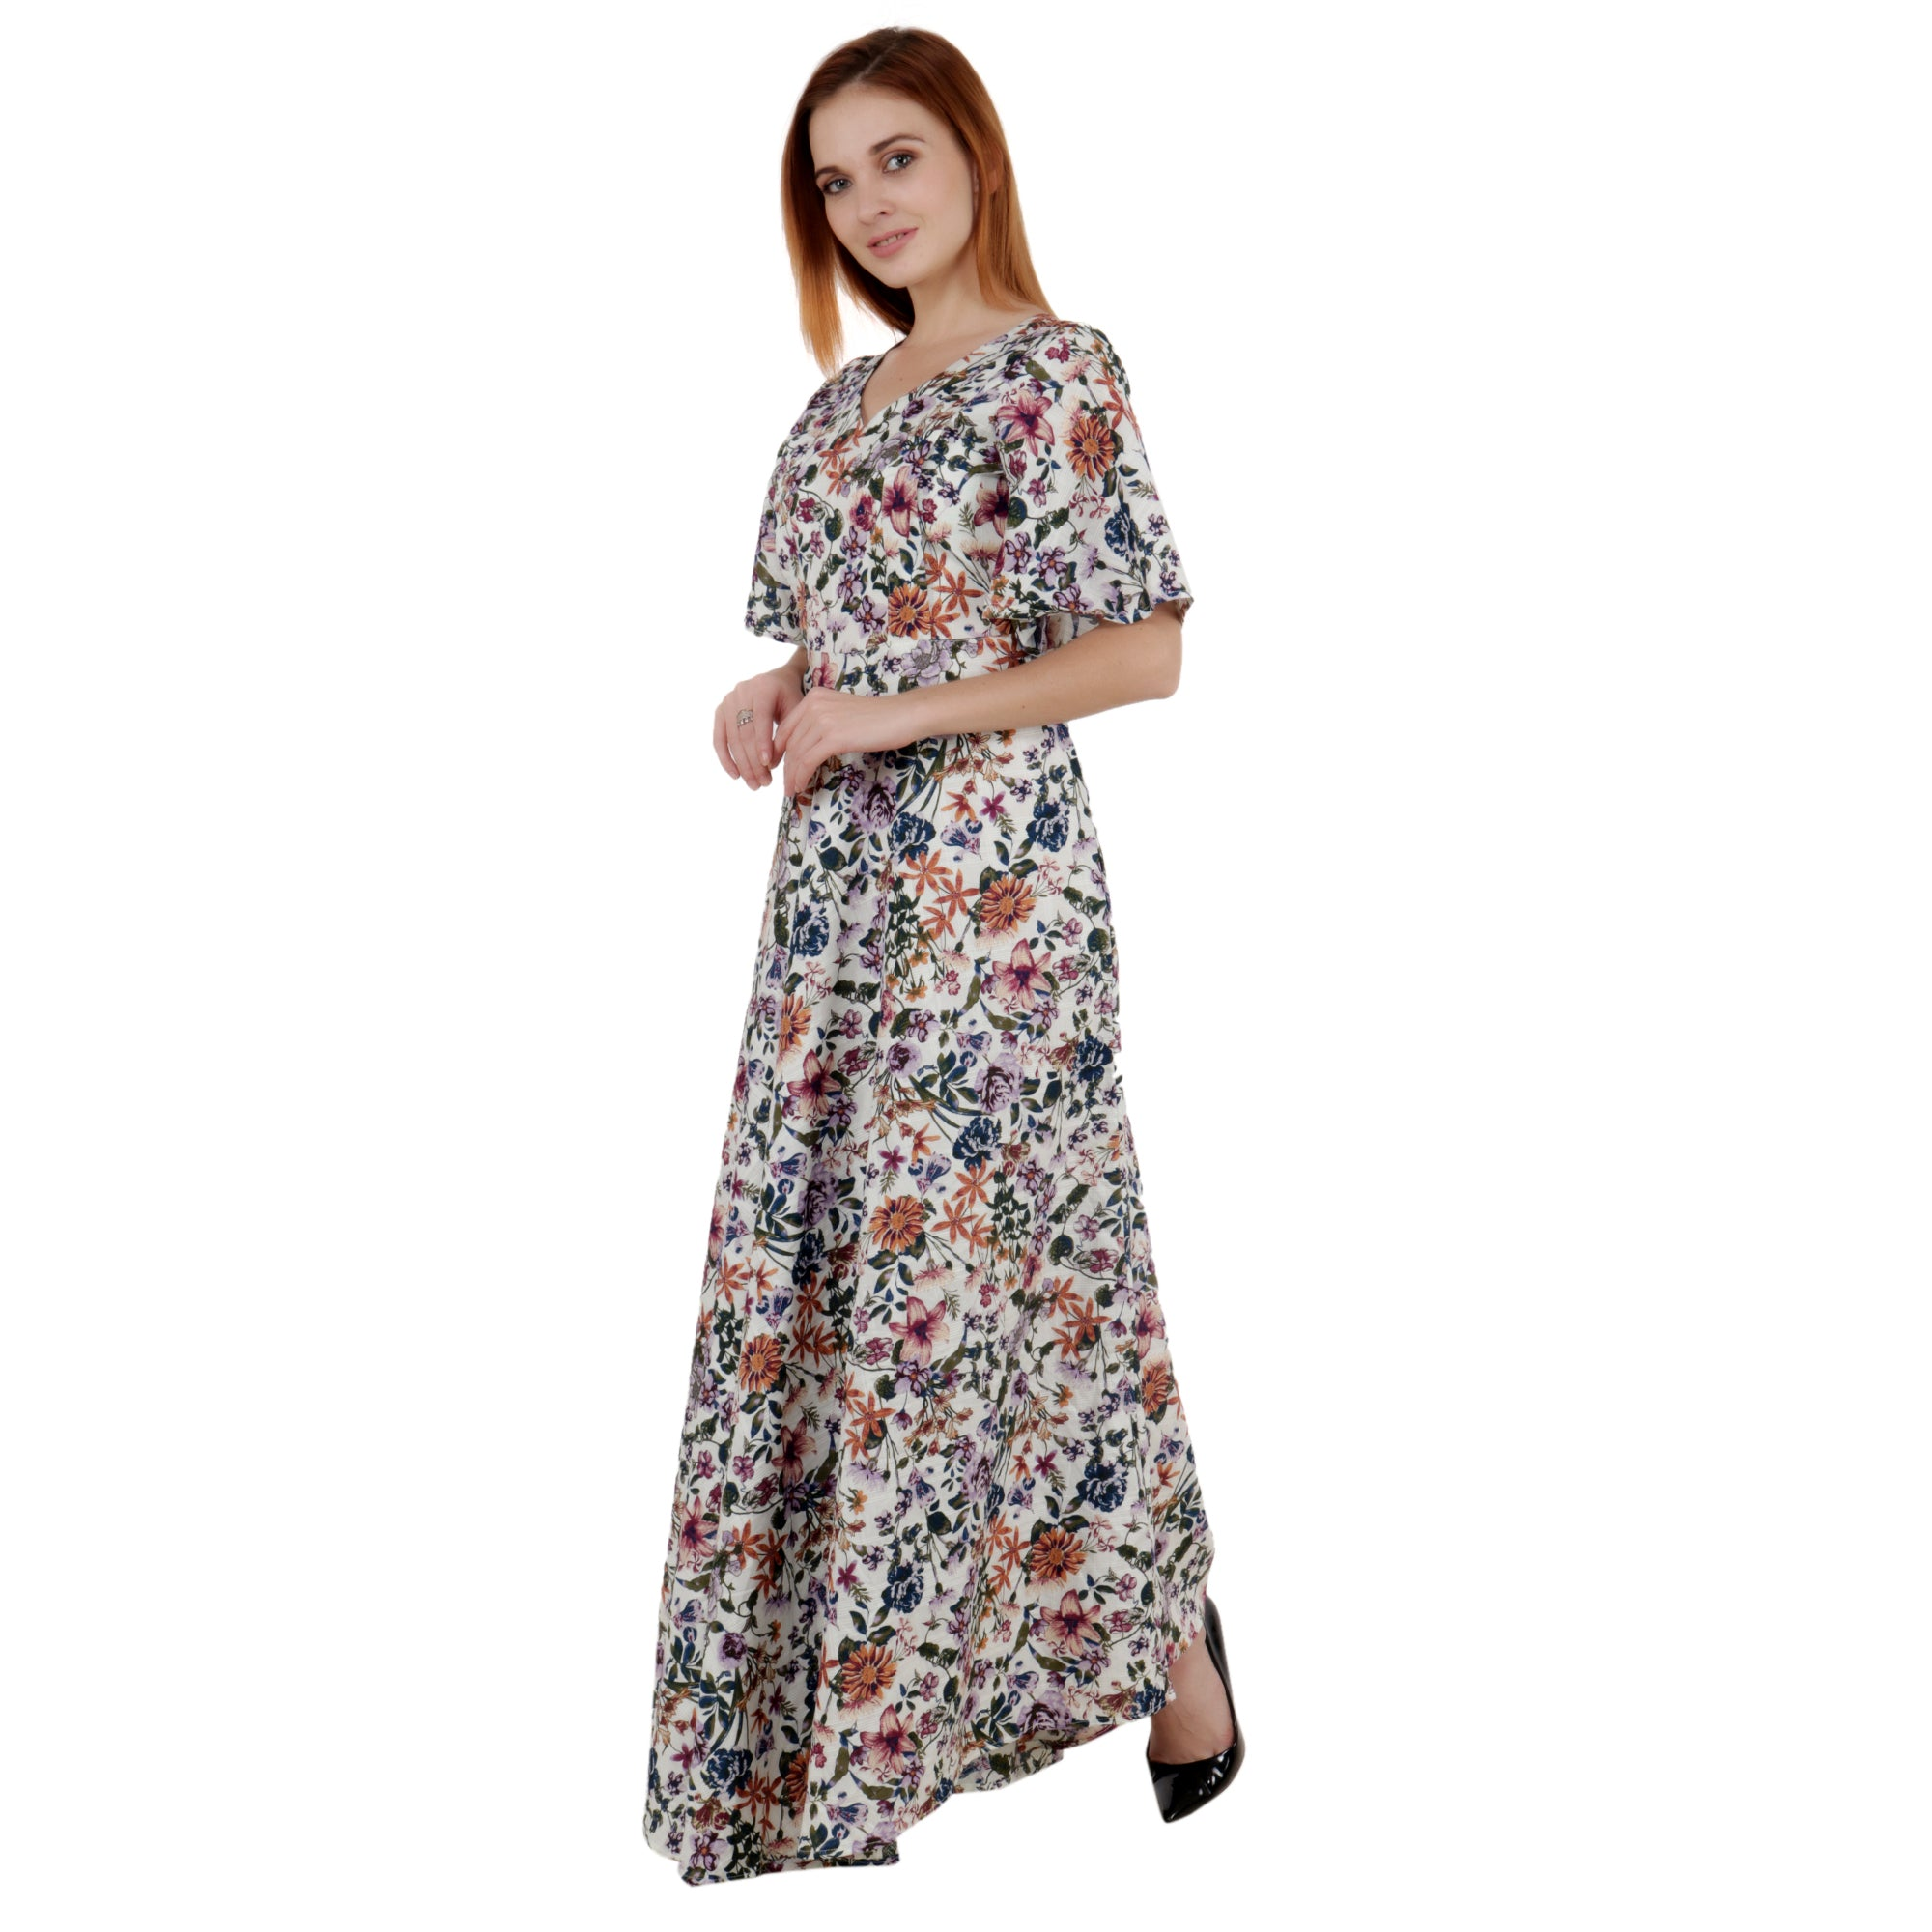 all size, ANKLE, apella, BELL SHAPED, best online store, cotton, Dress, dresses online, FLARED, plus size, quality products, RAYON, reasonable price, skin friendly fabrics, soft cotton, soft